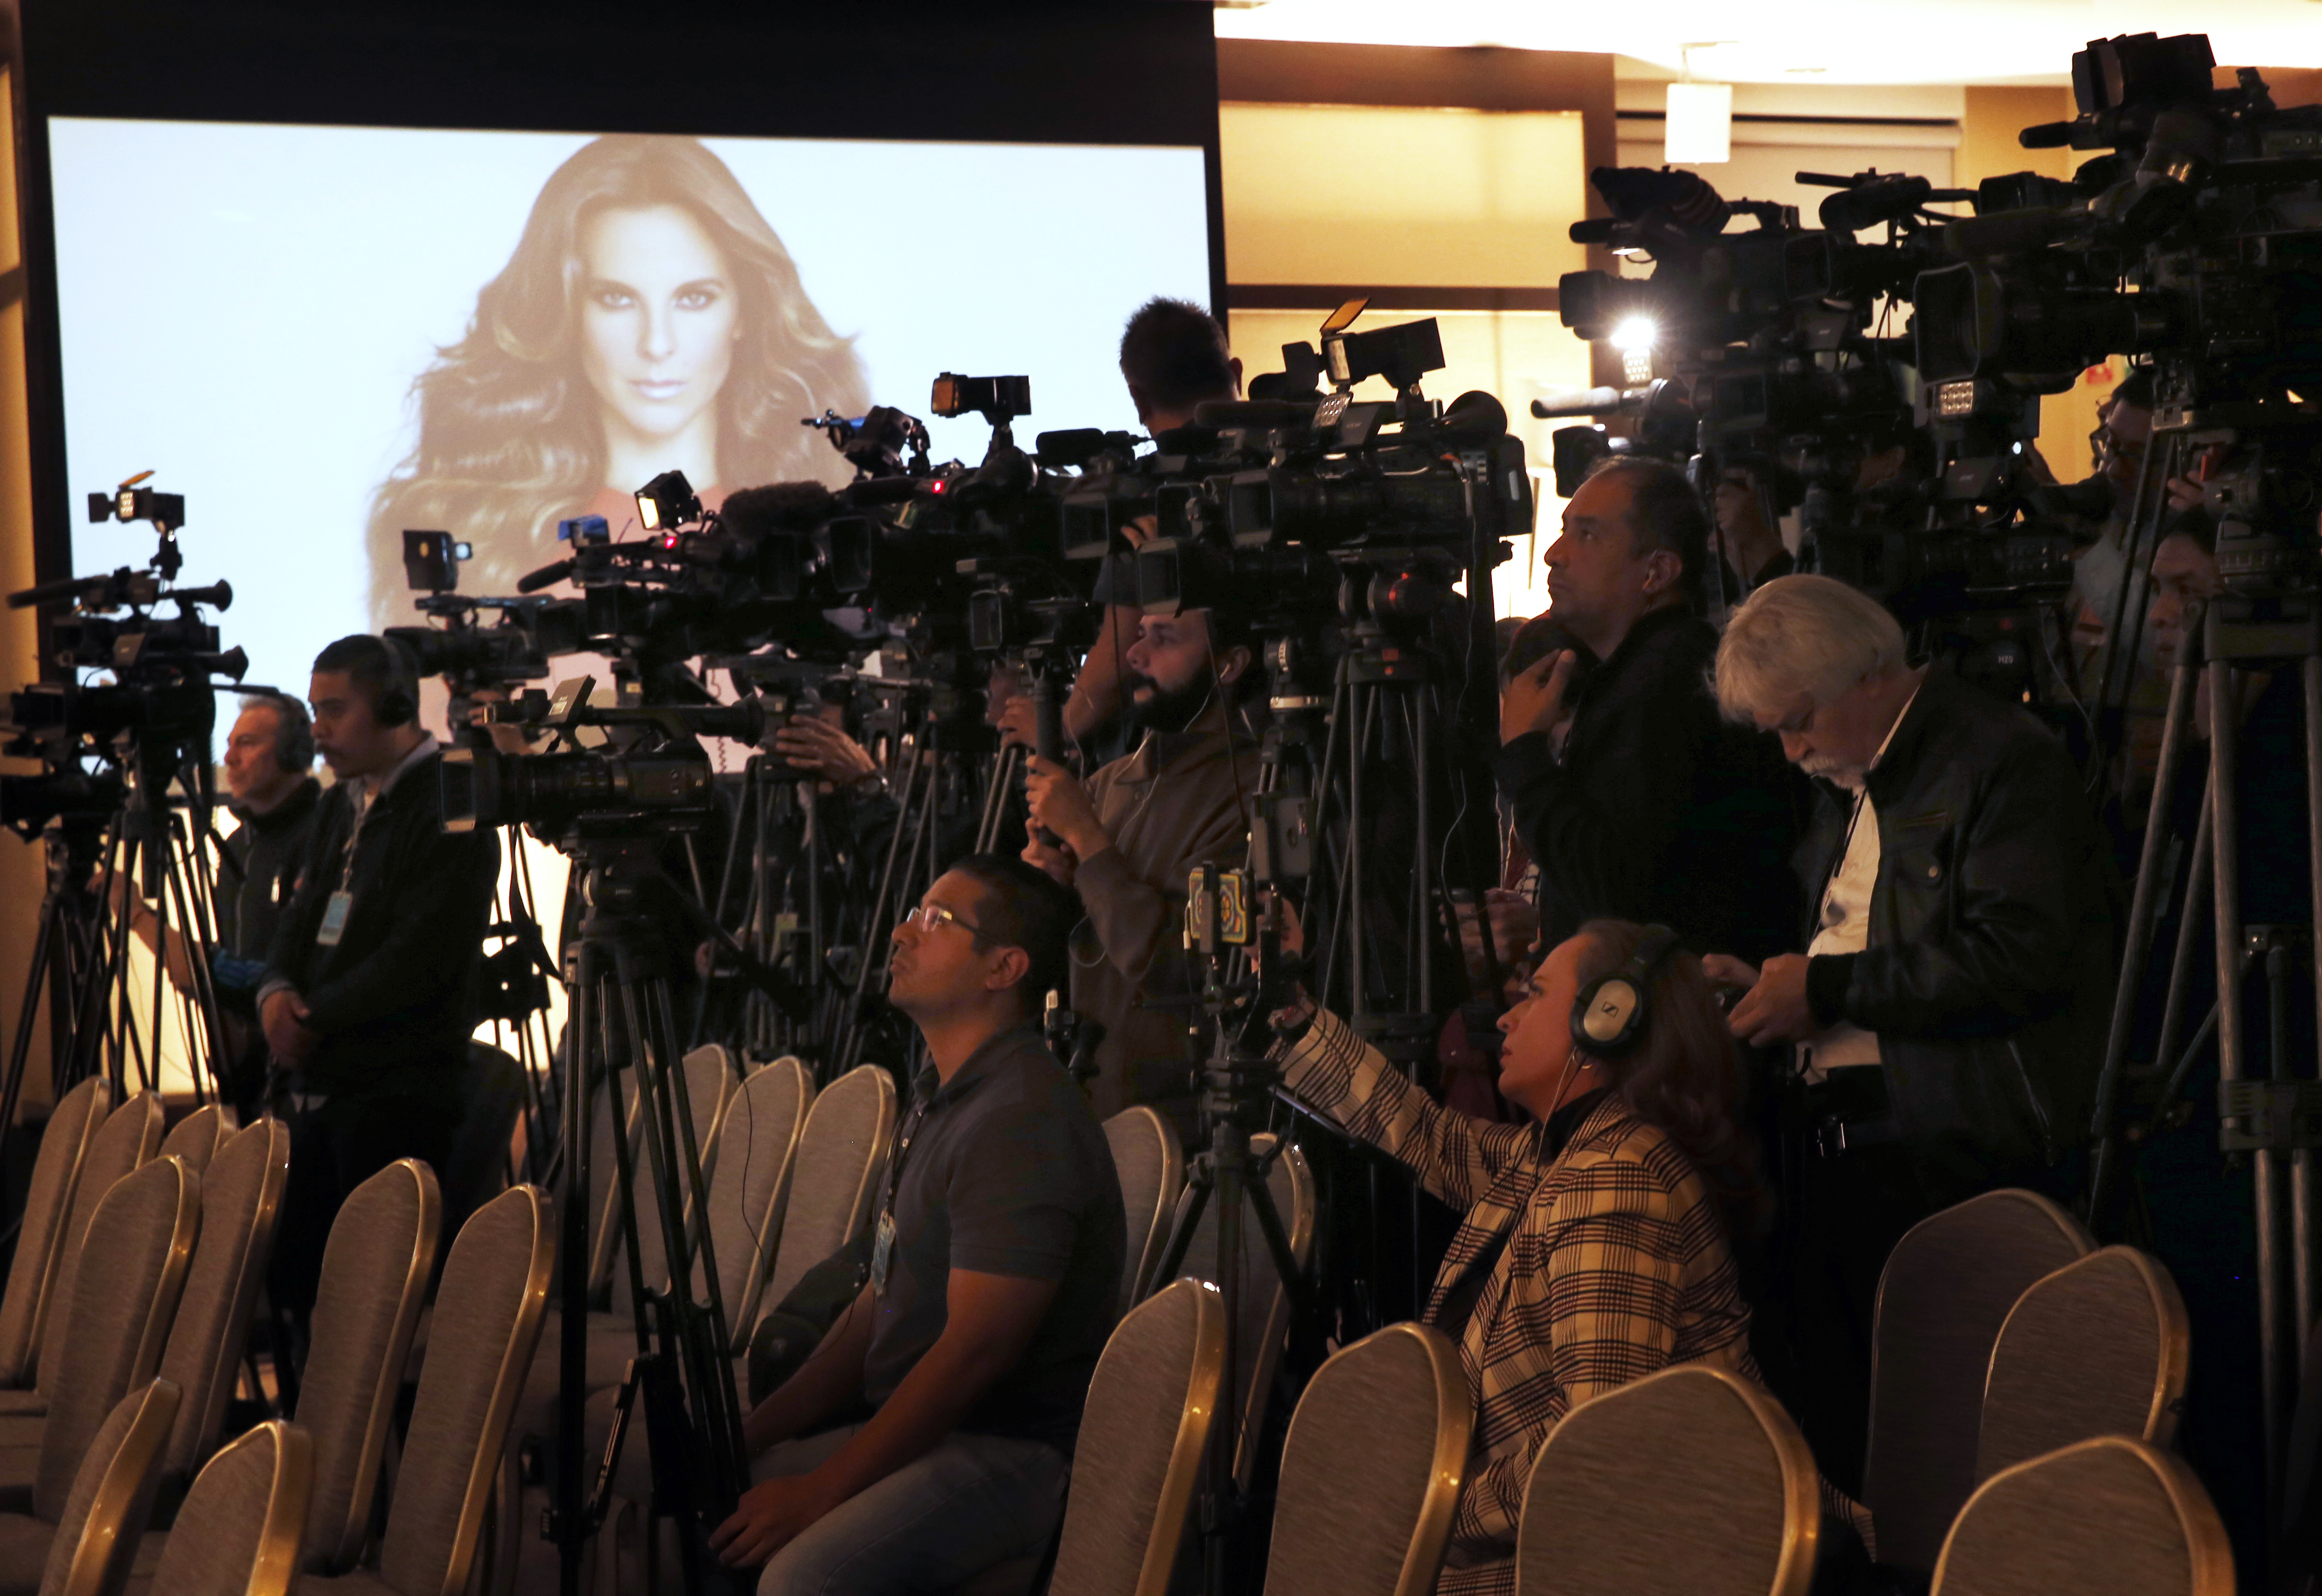 Members of the press cover a press conference by Kate del Castillo in Mexico City